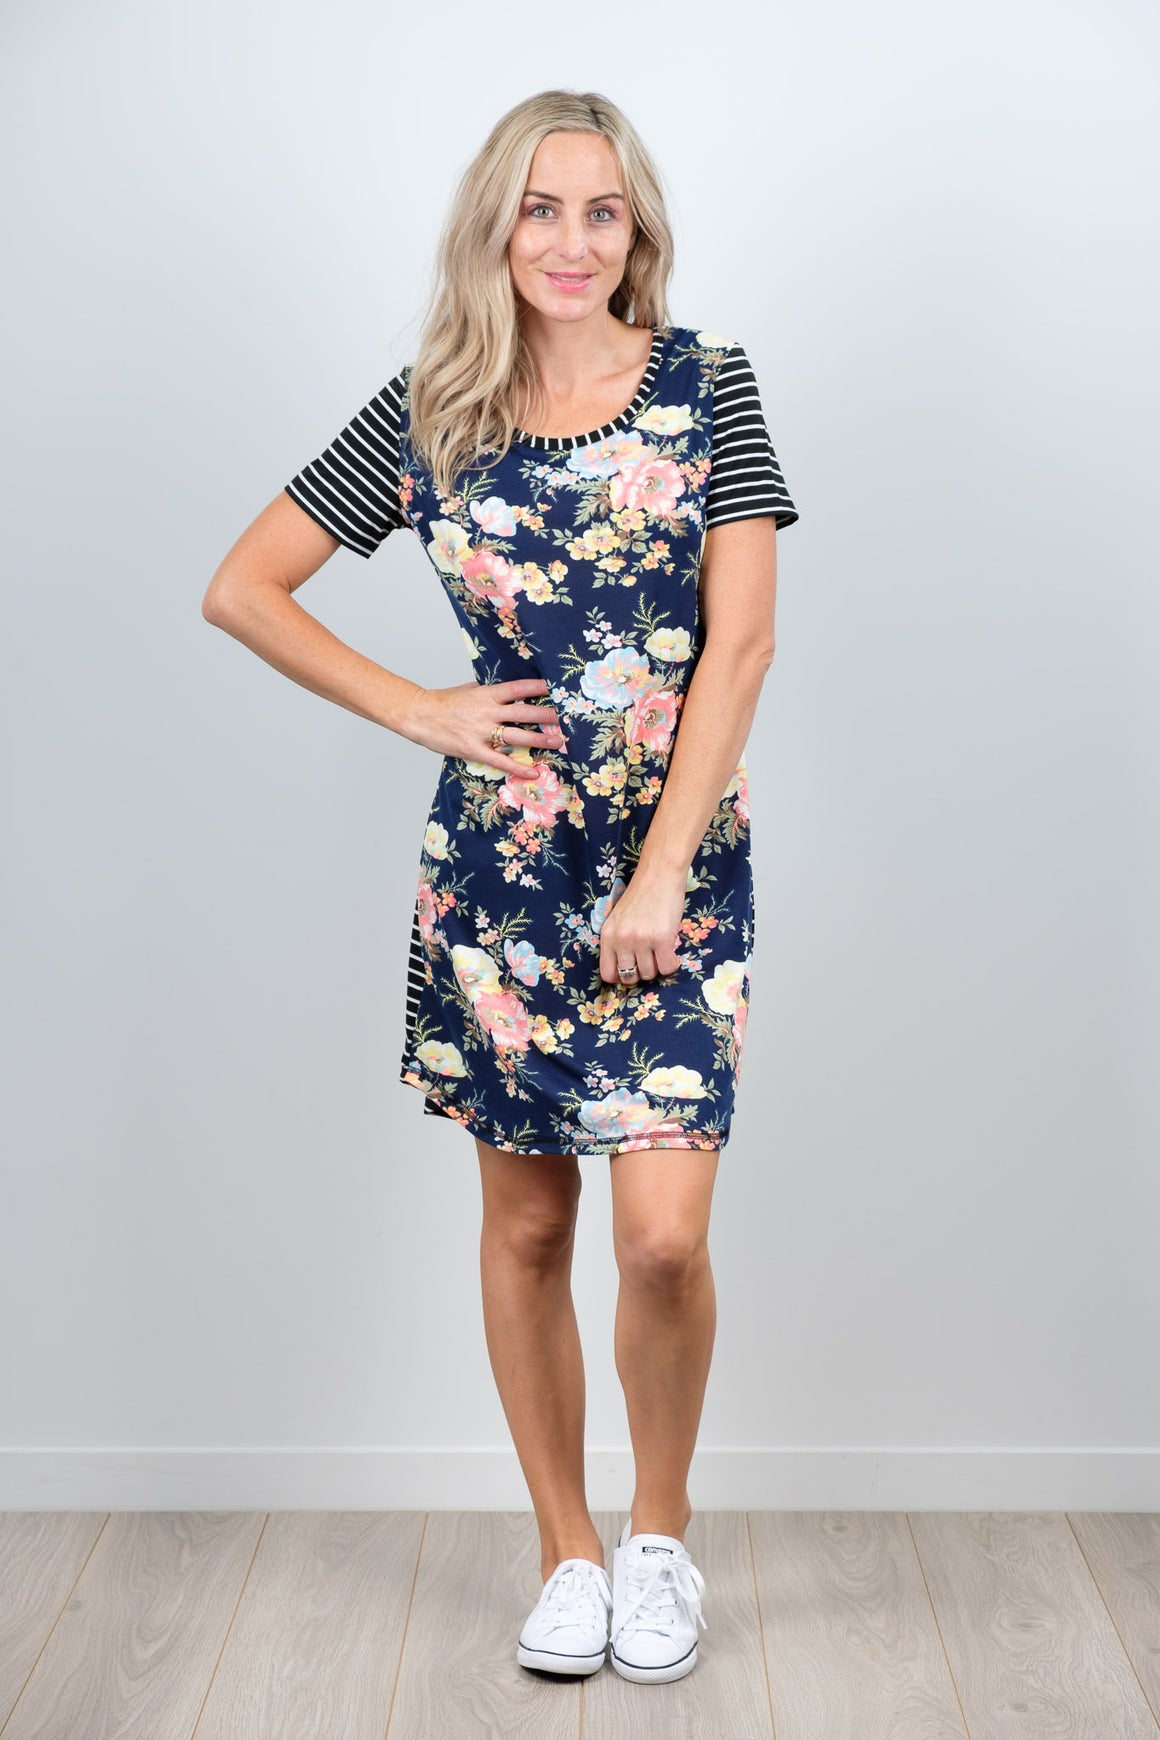 White Chalk Amber Dress - Navy Floral/Stripe Sleeve